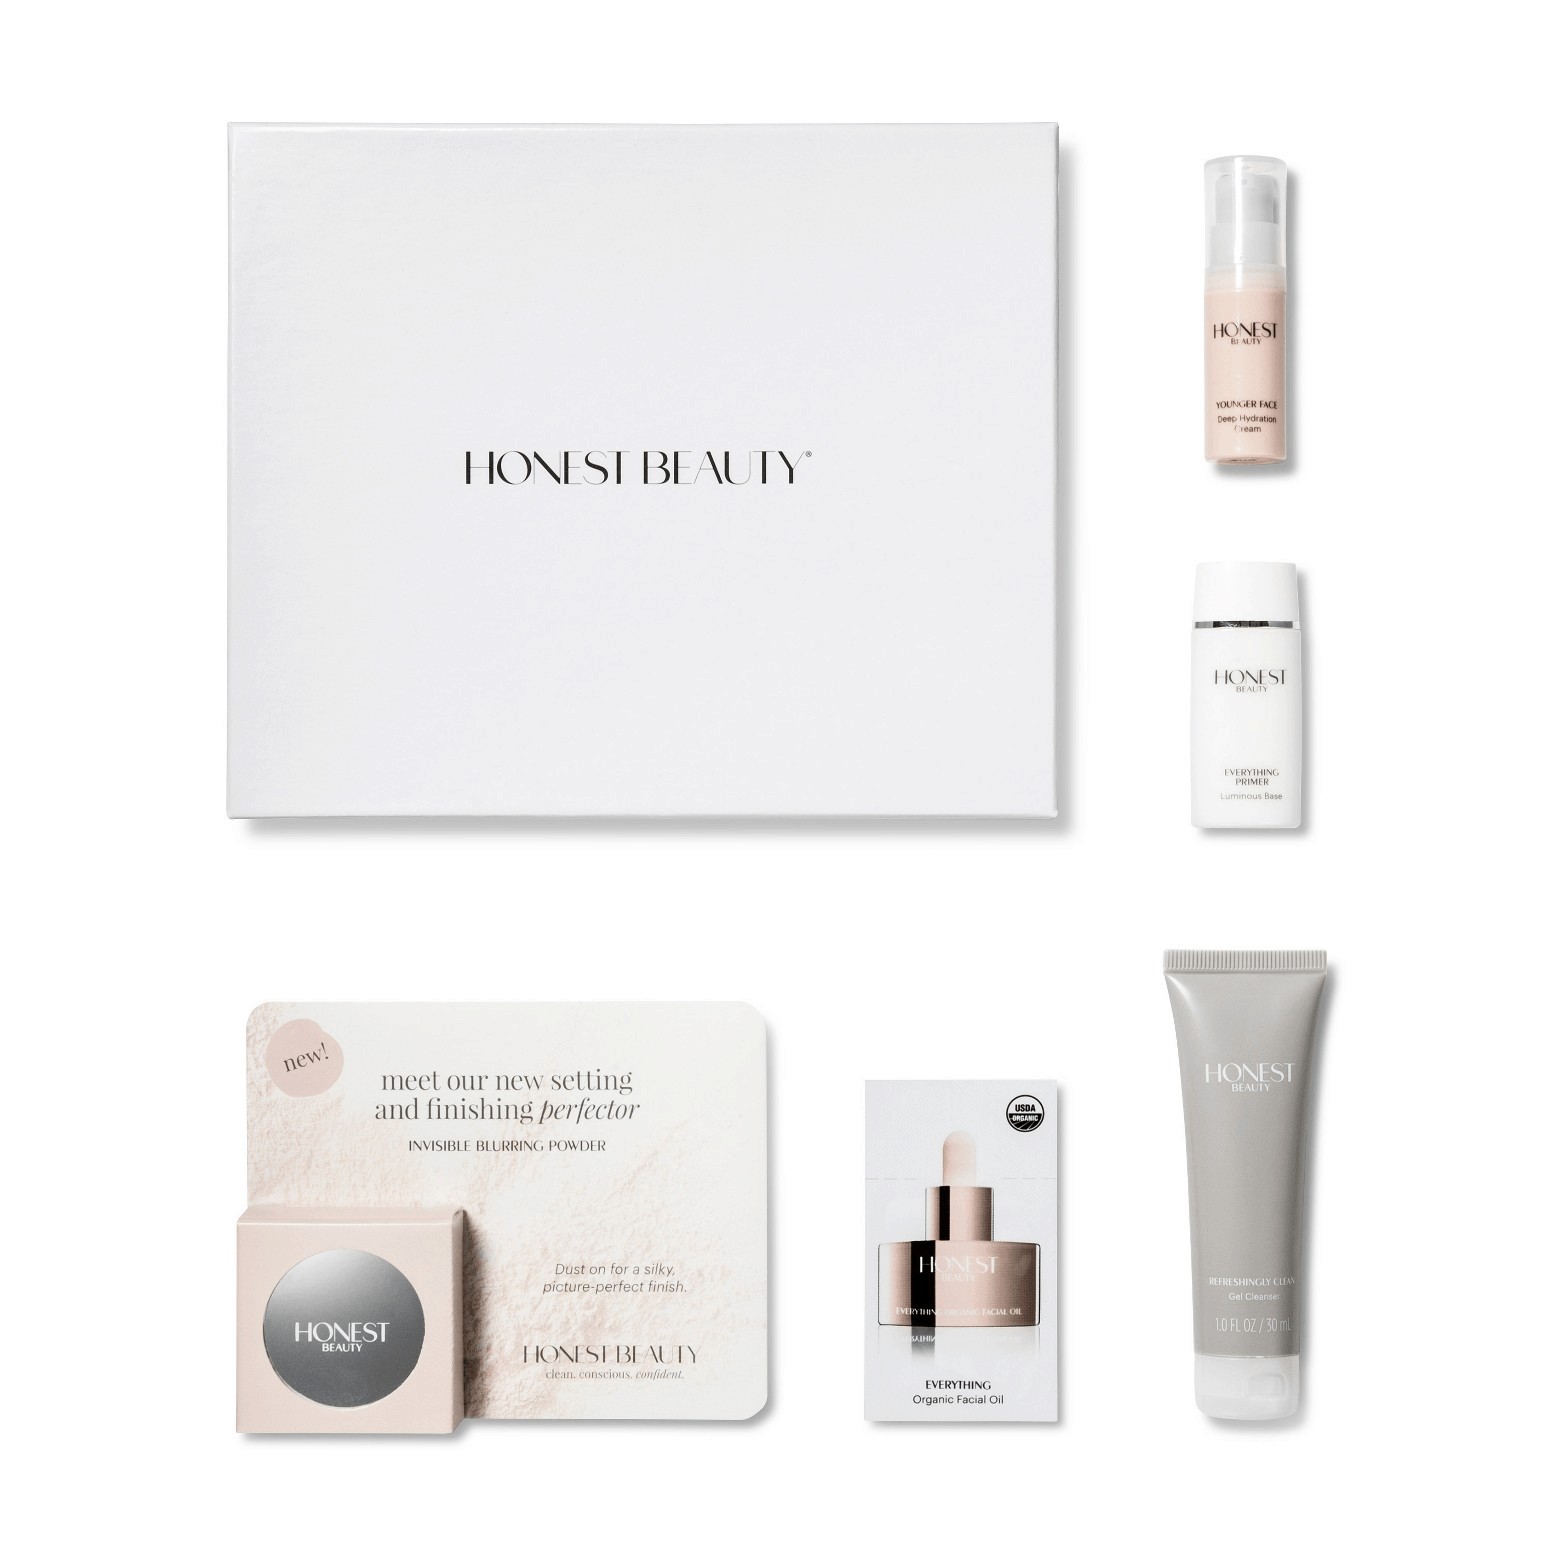 February 2018 Target Beauty Box Available Now!